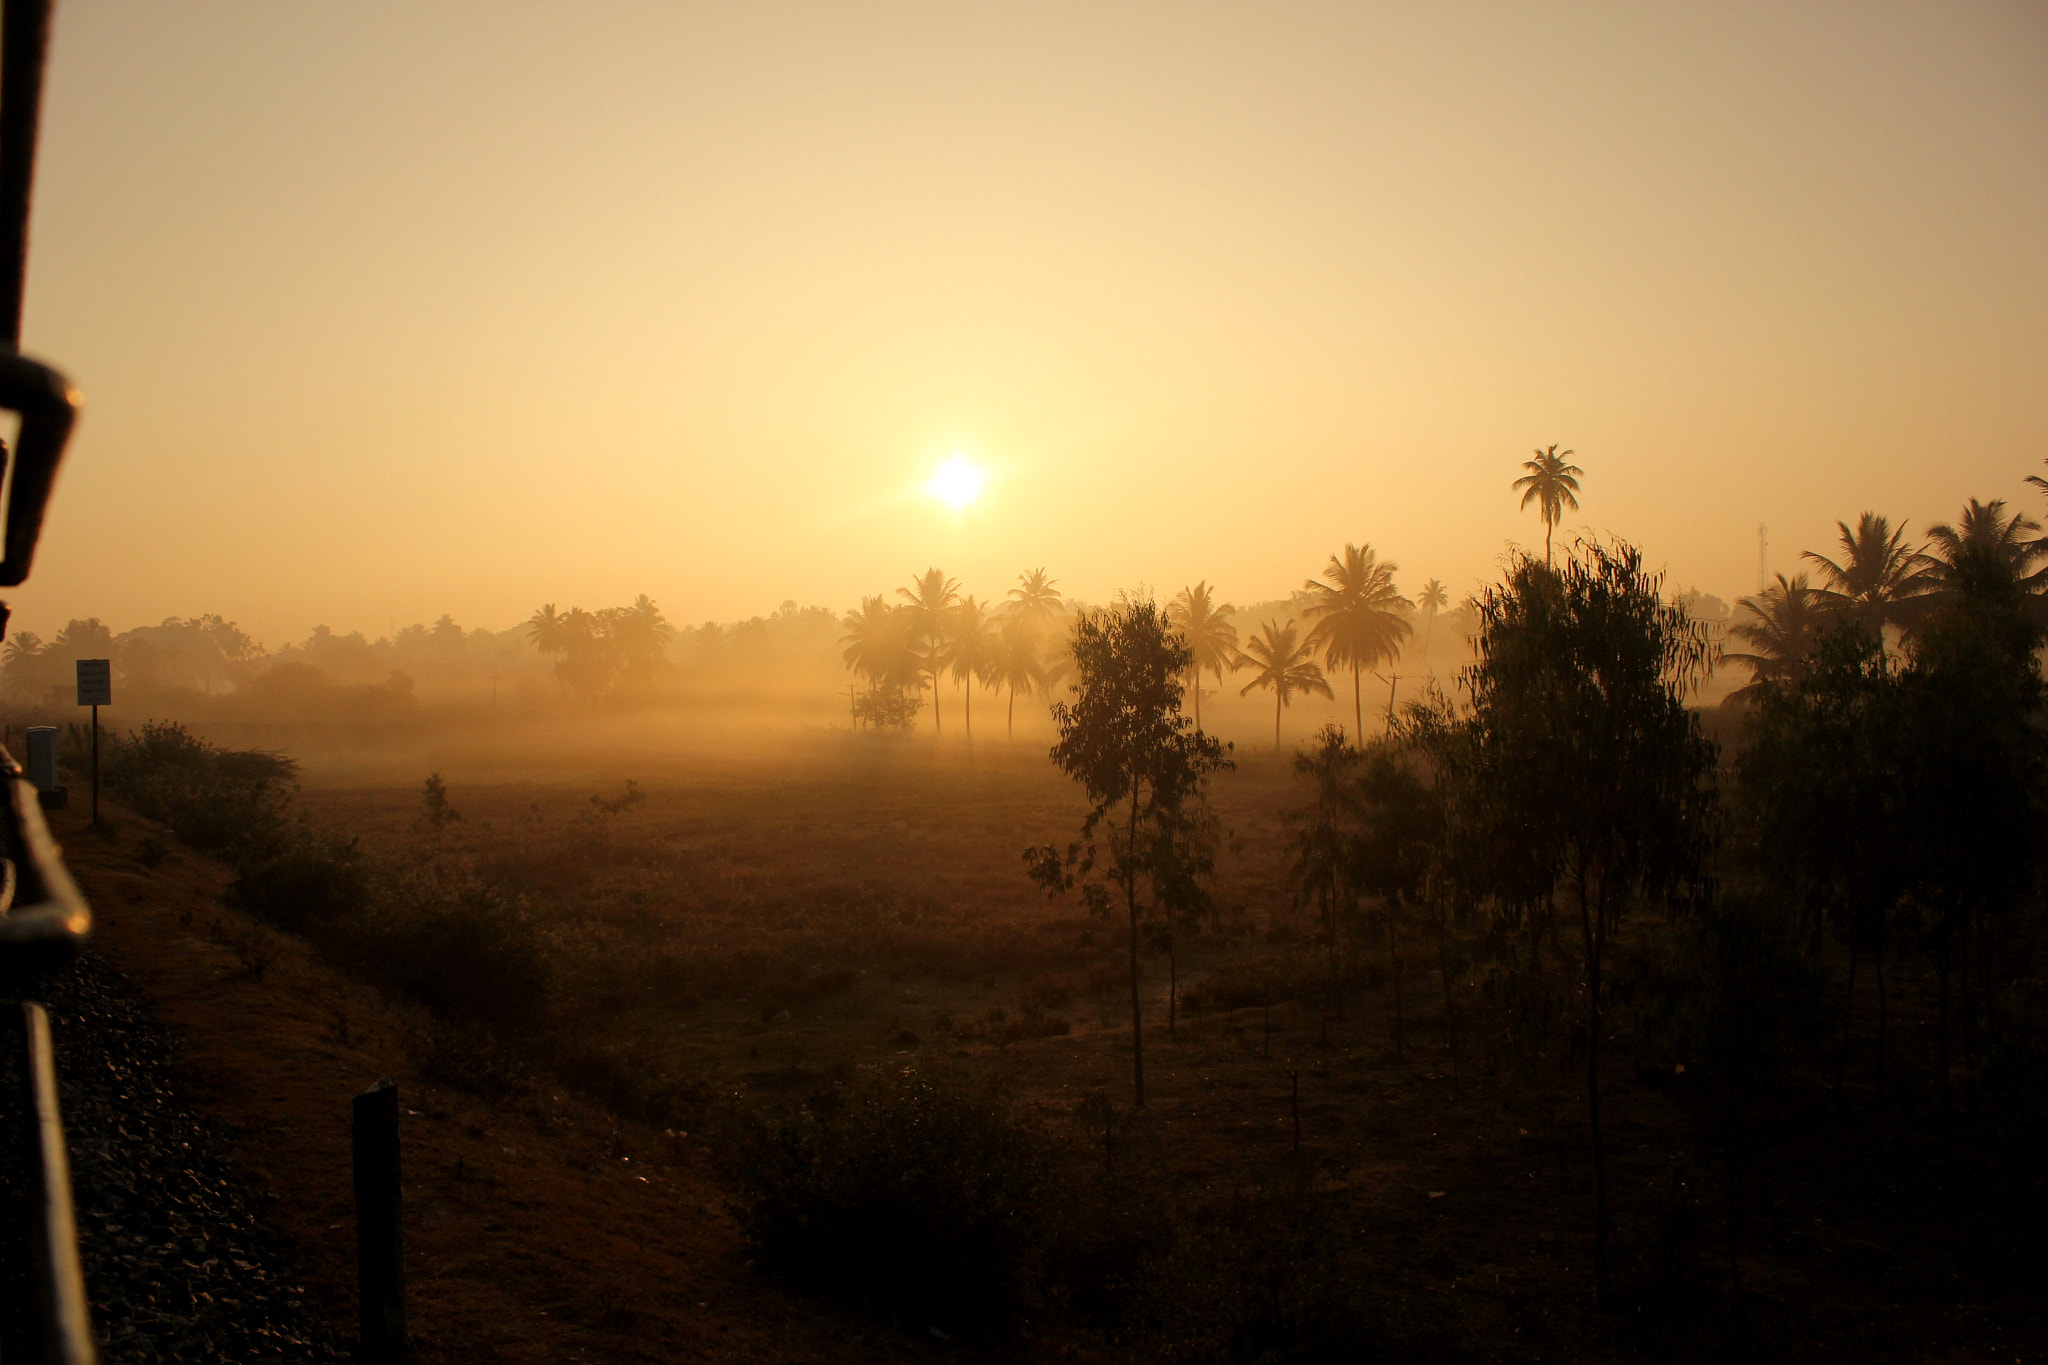 Photograph When the sun takes guard from the Mist. by Shiv Kalappa on 500px